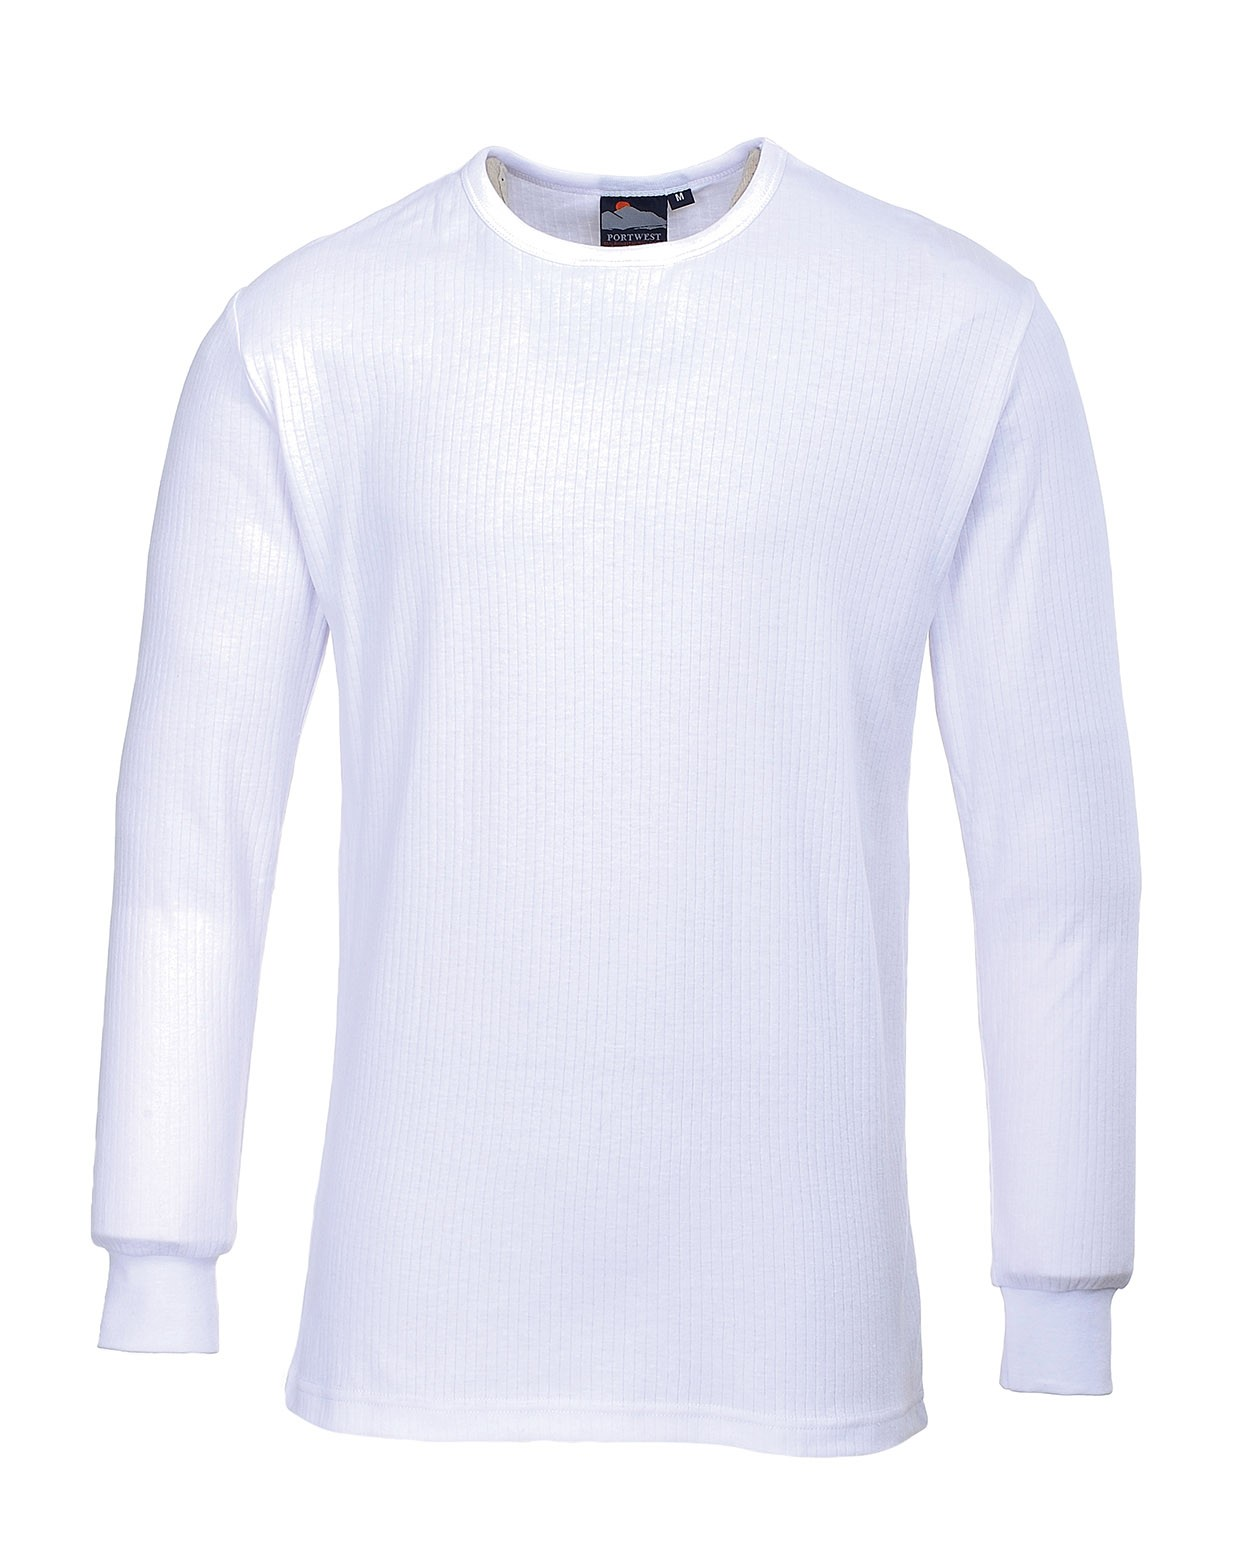 Long Sleeved Thermal vest w/ Good insulation against cold conditions